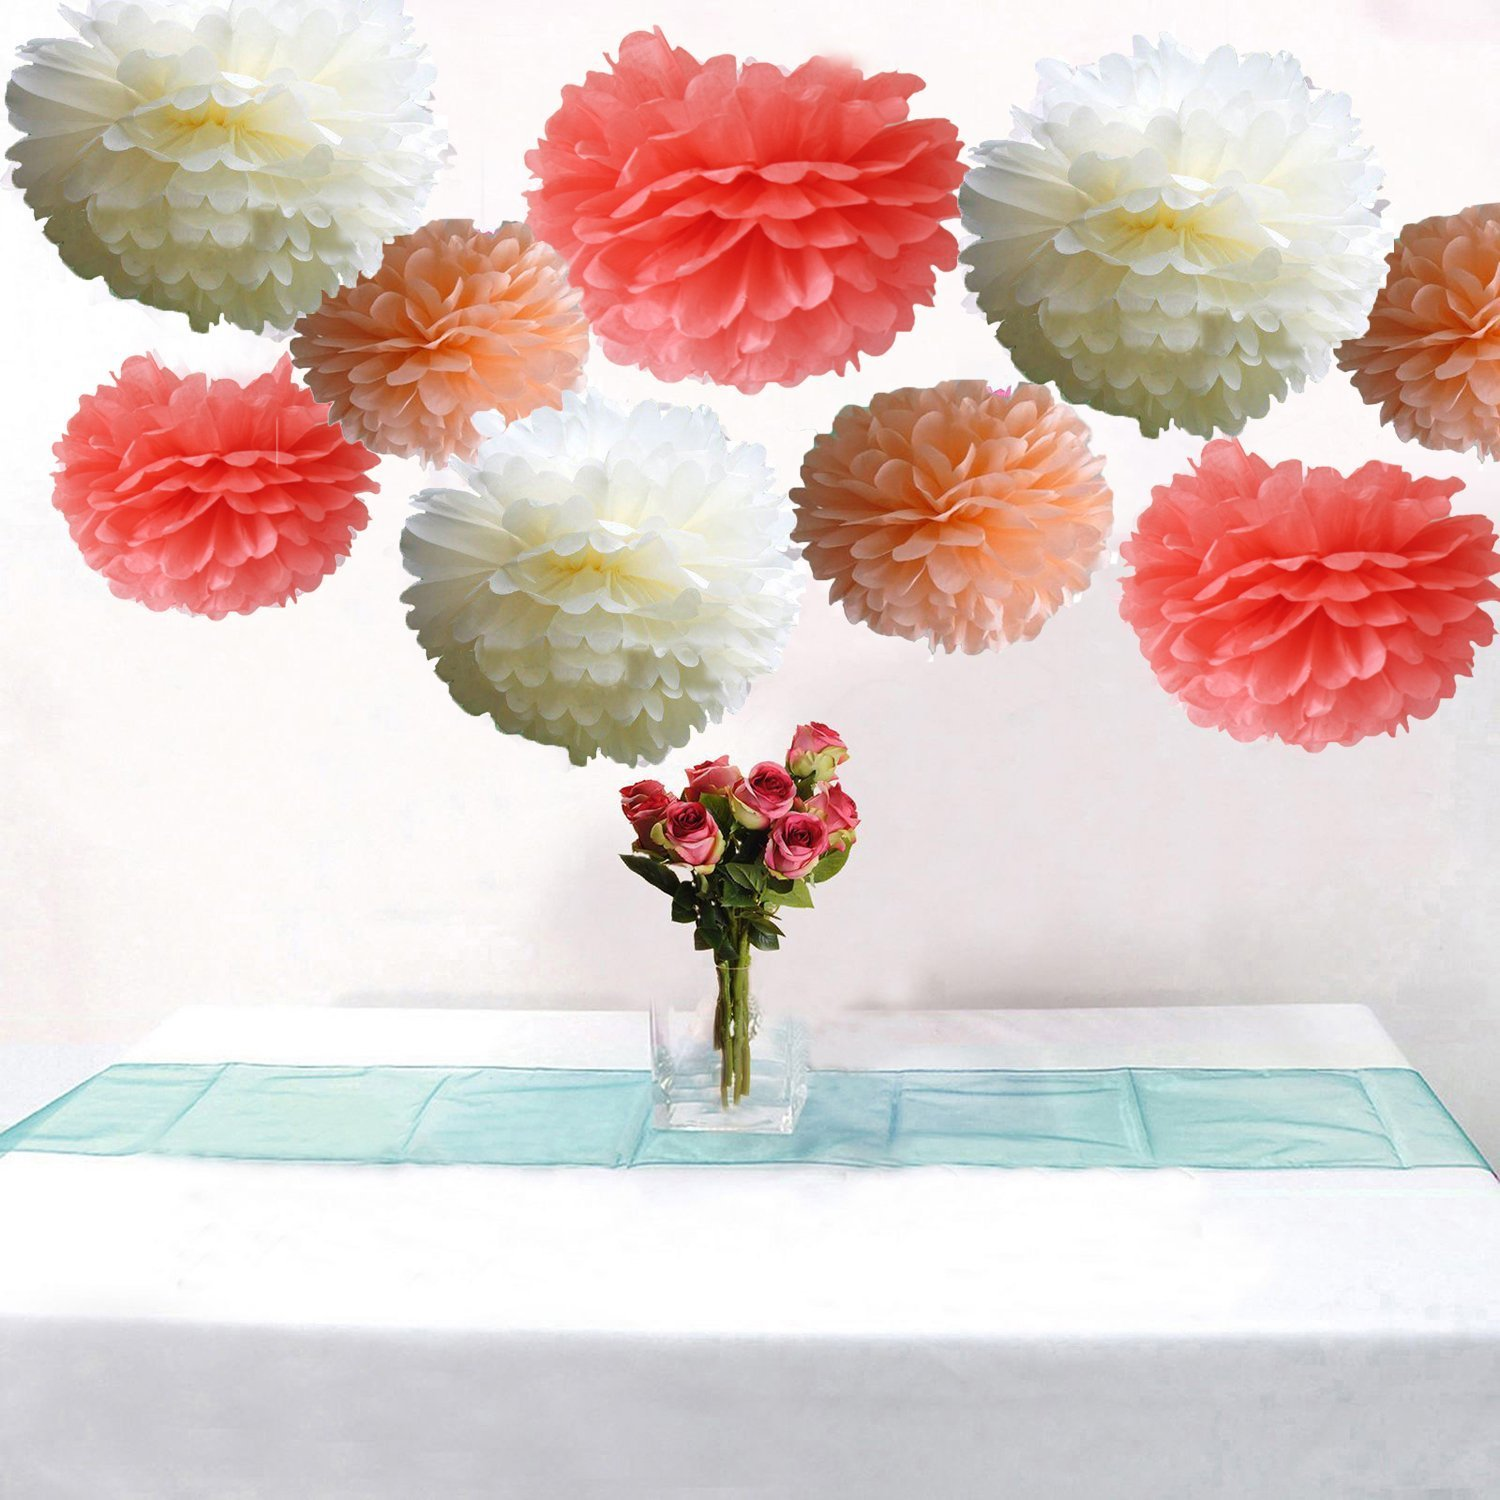 18PCS Mixed Coral Peach Ivory Tissue Paper Flower Pom Poms Pompoms ...